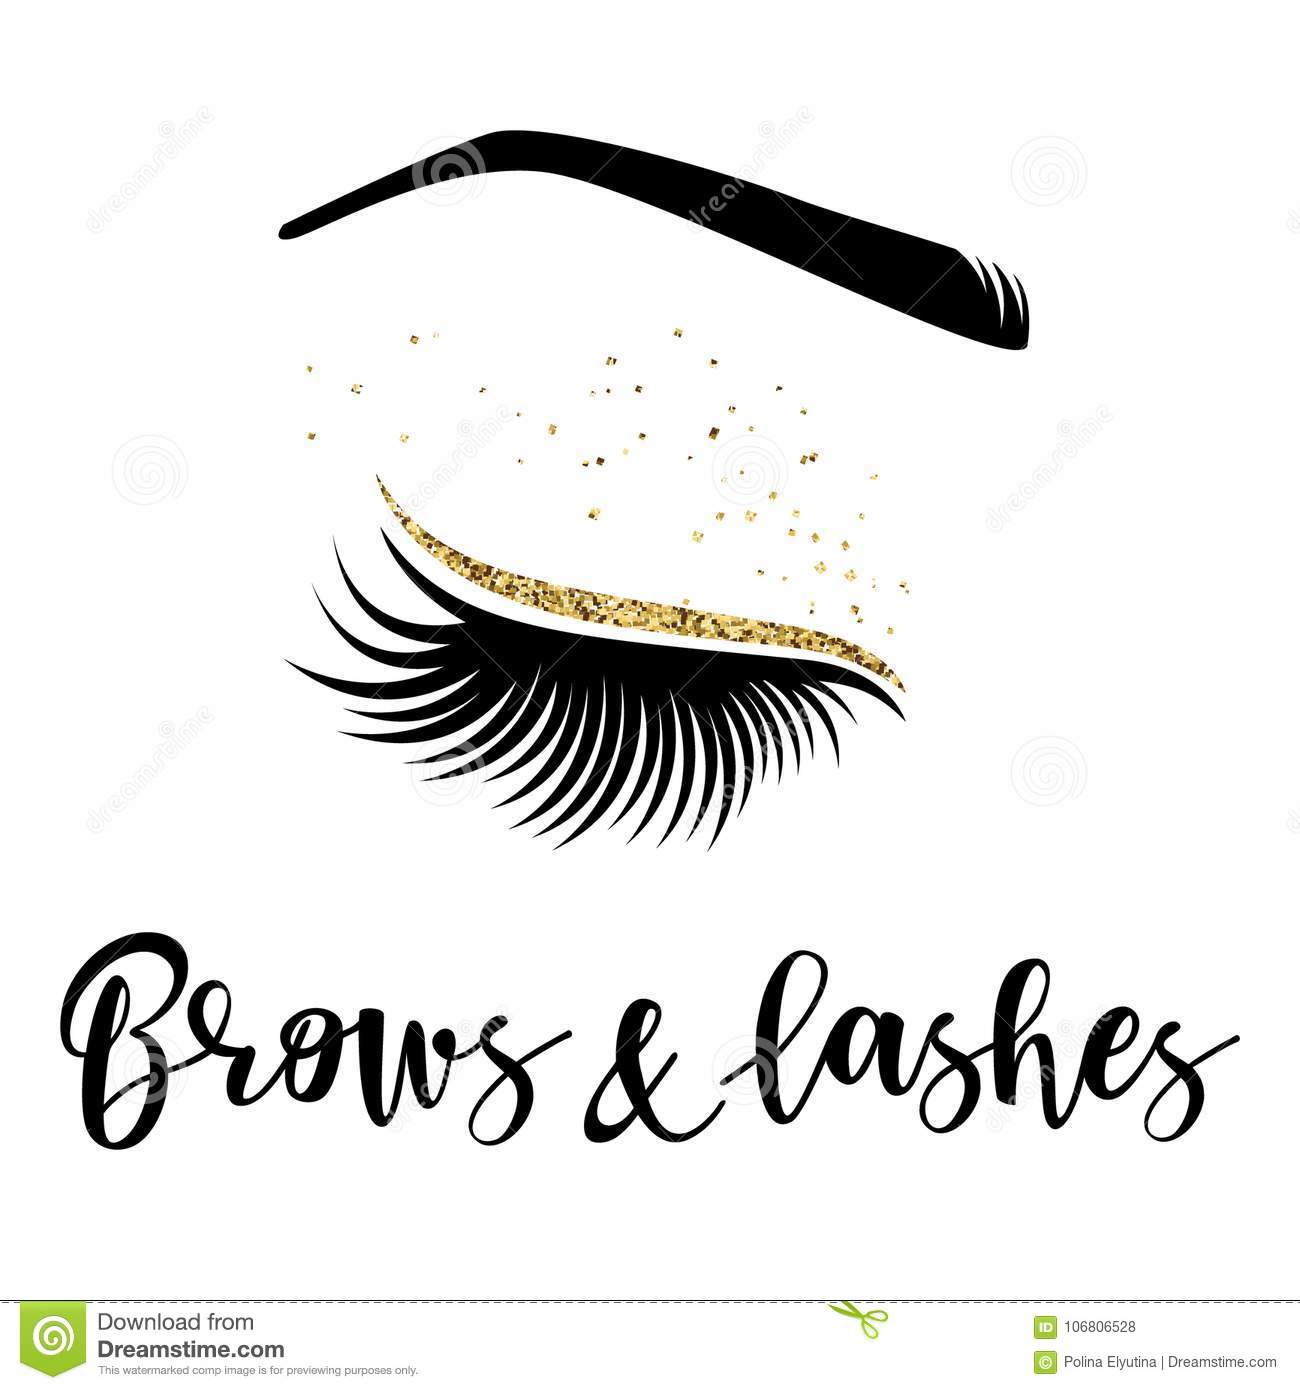 87498f7e860 Brows and lashes logo. Vector illustration of lashes and brow. For beauty  salon, lash extensions maker, brow master.